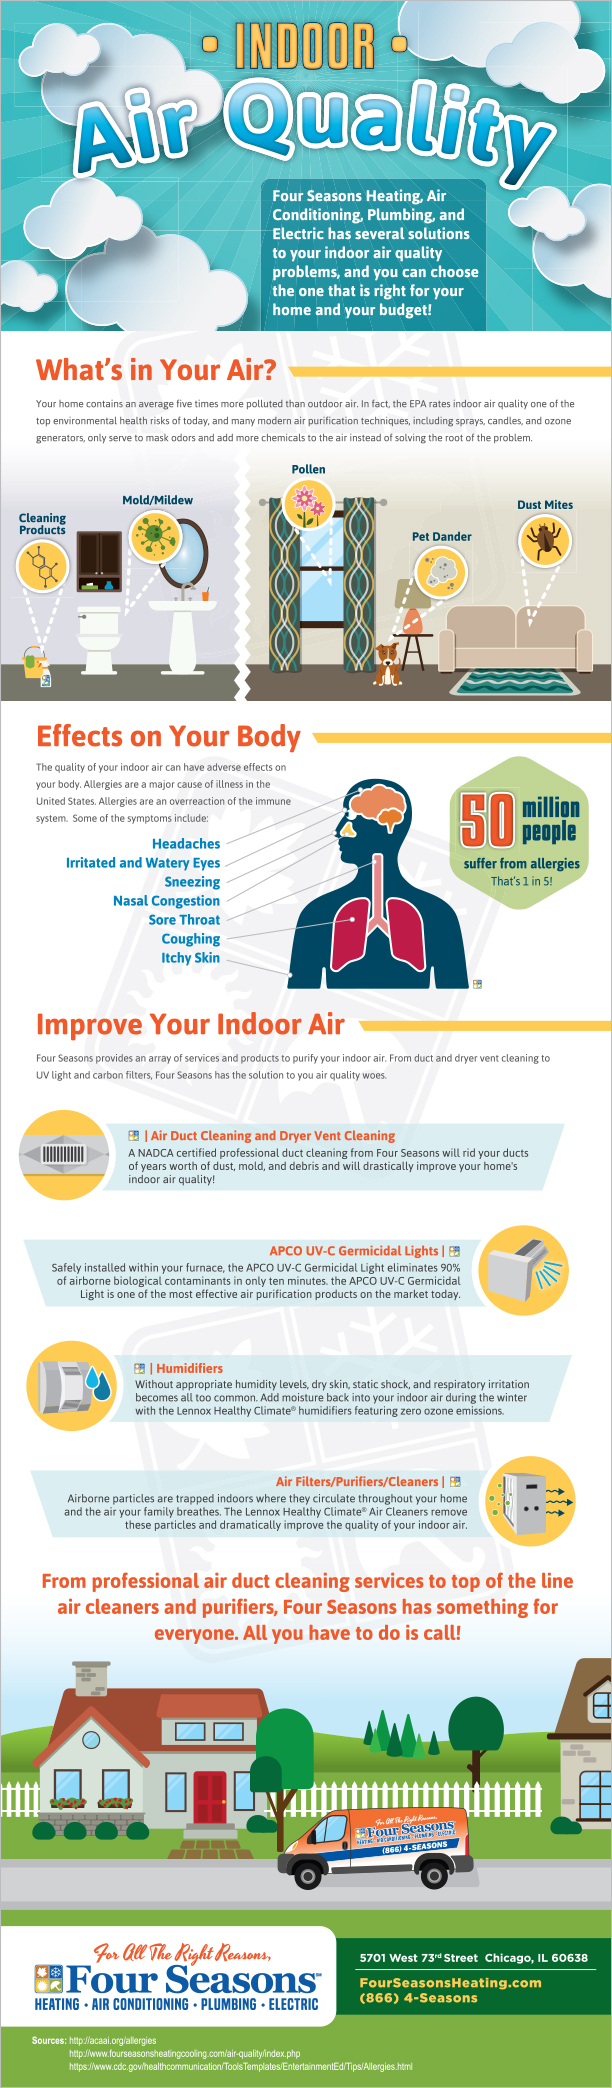 Poor Indoor Air Quality Is A Problemair Conditioning And Heating